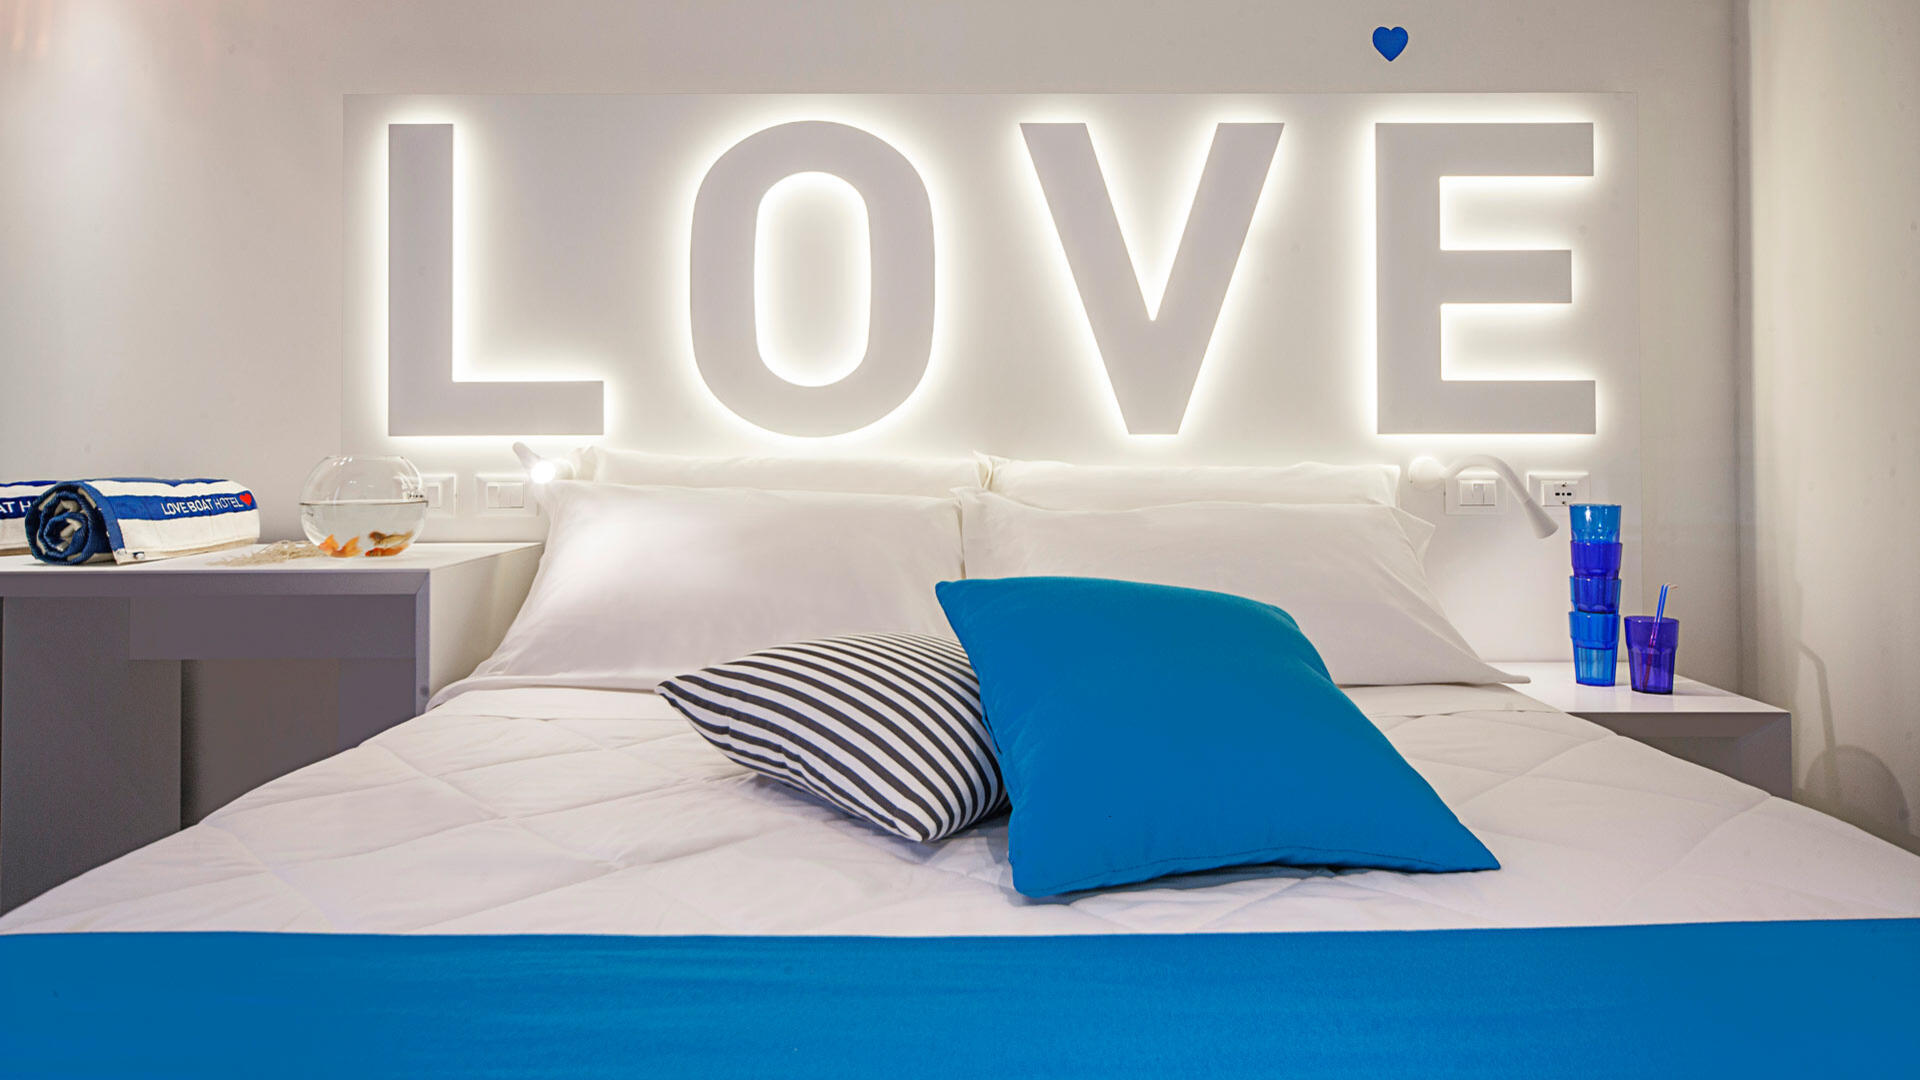 hotelloveboat it camere 006